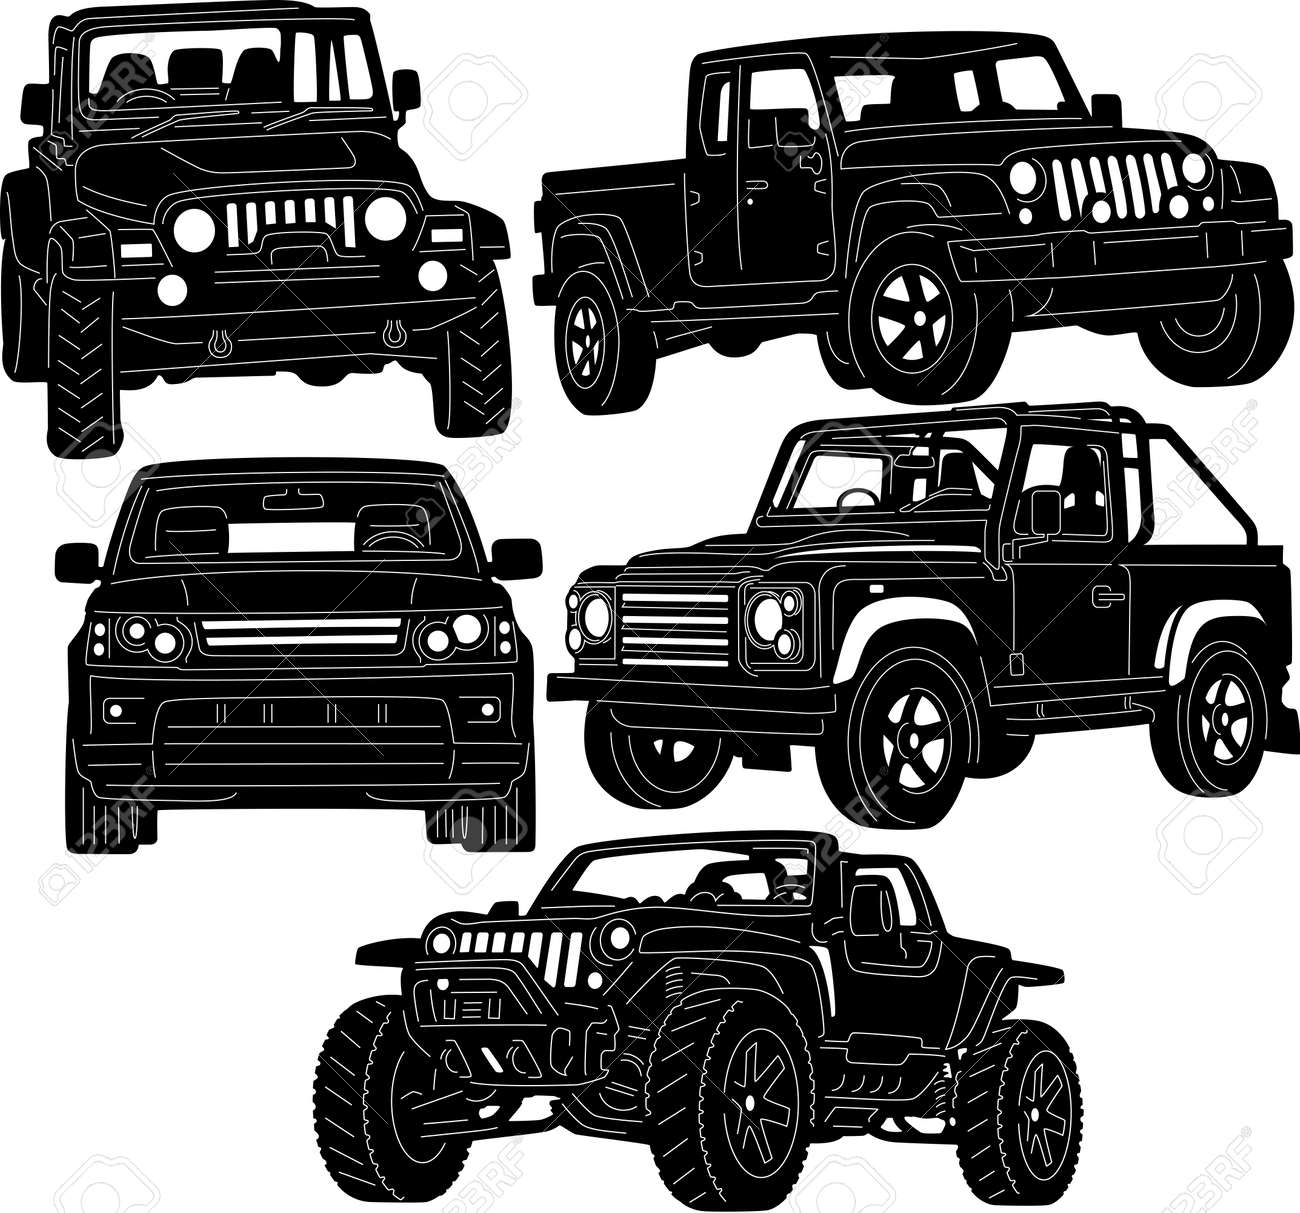 4x4 Truck Silhouette Royalty Free Cliparts Vectors And Stock